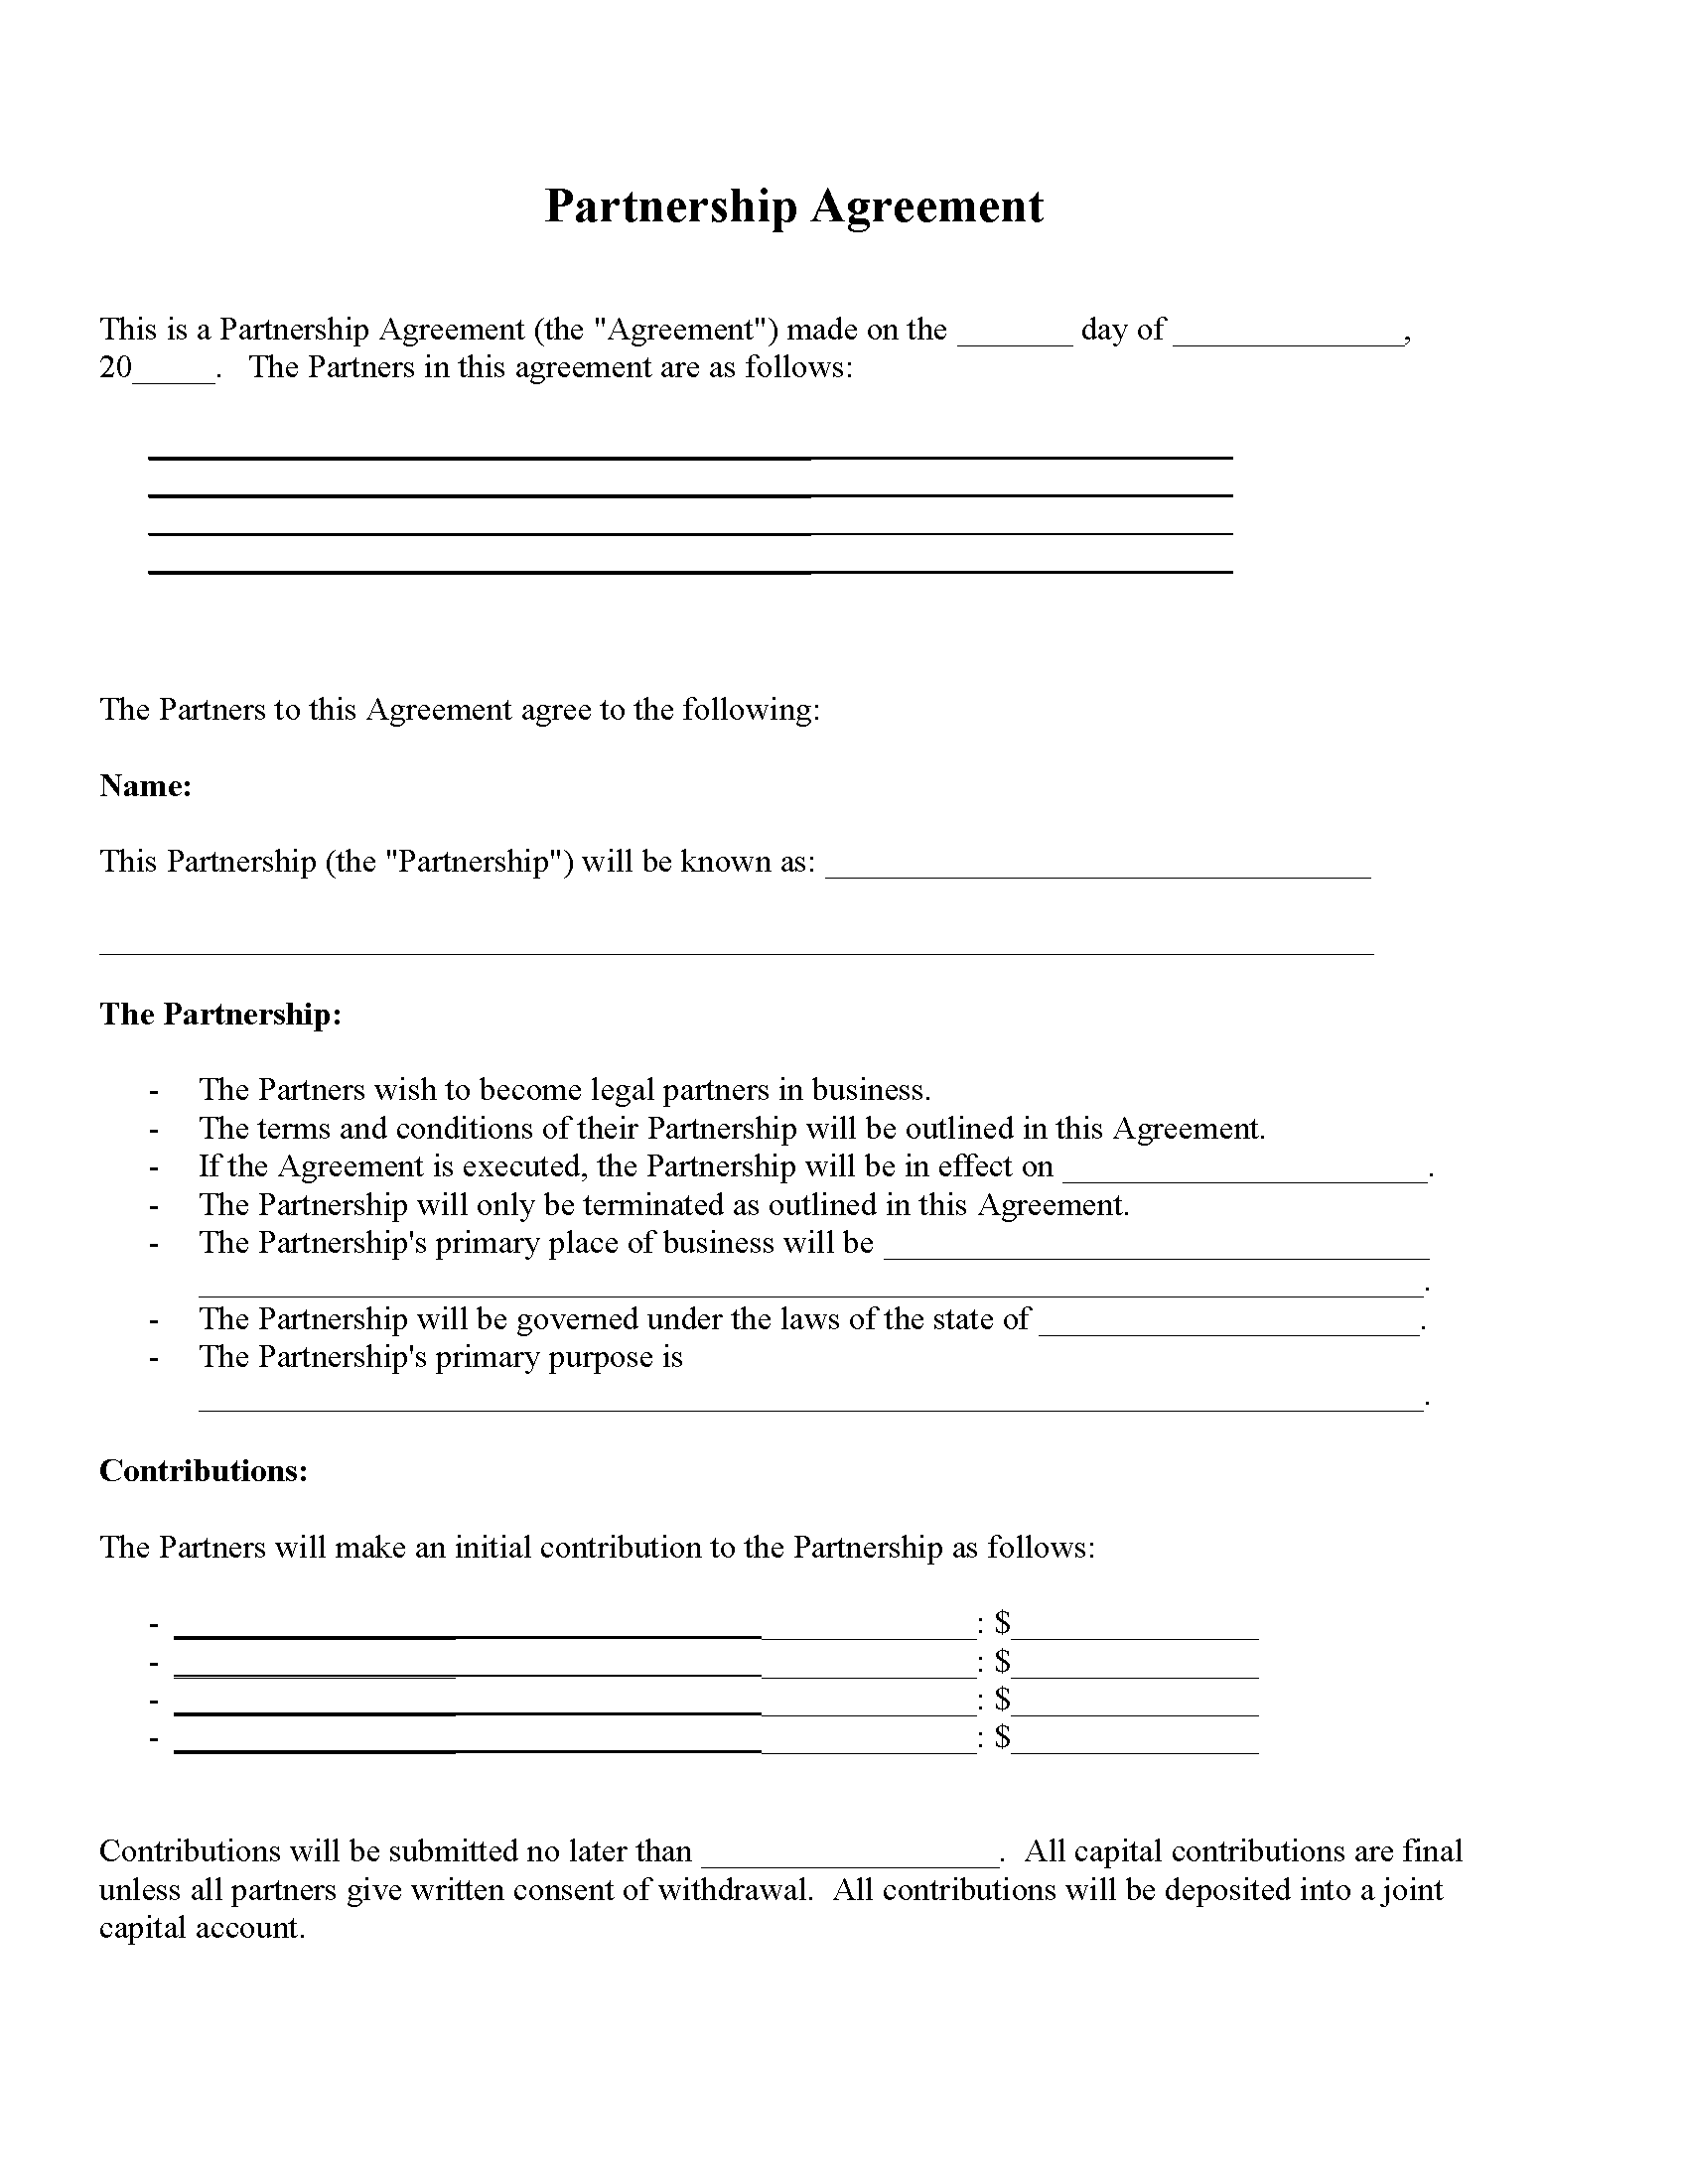 Partnership Agreement Forms